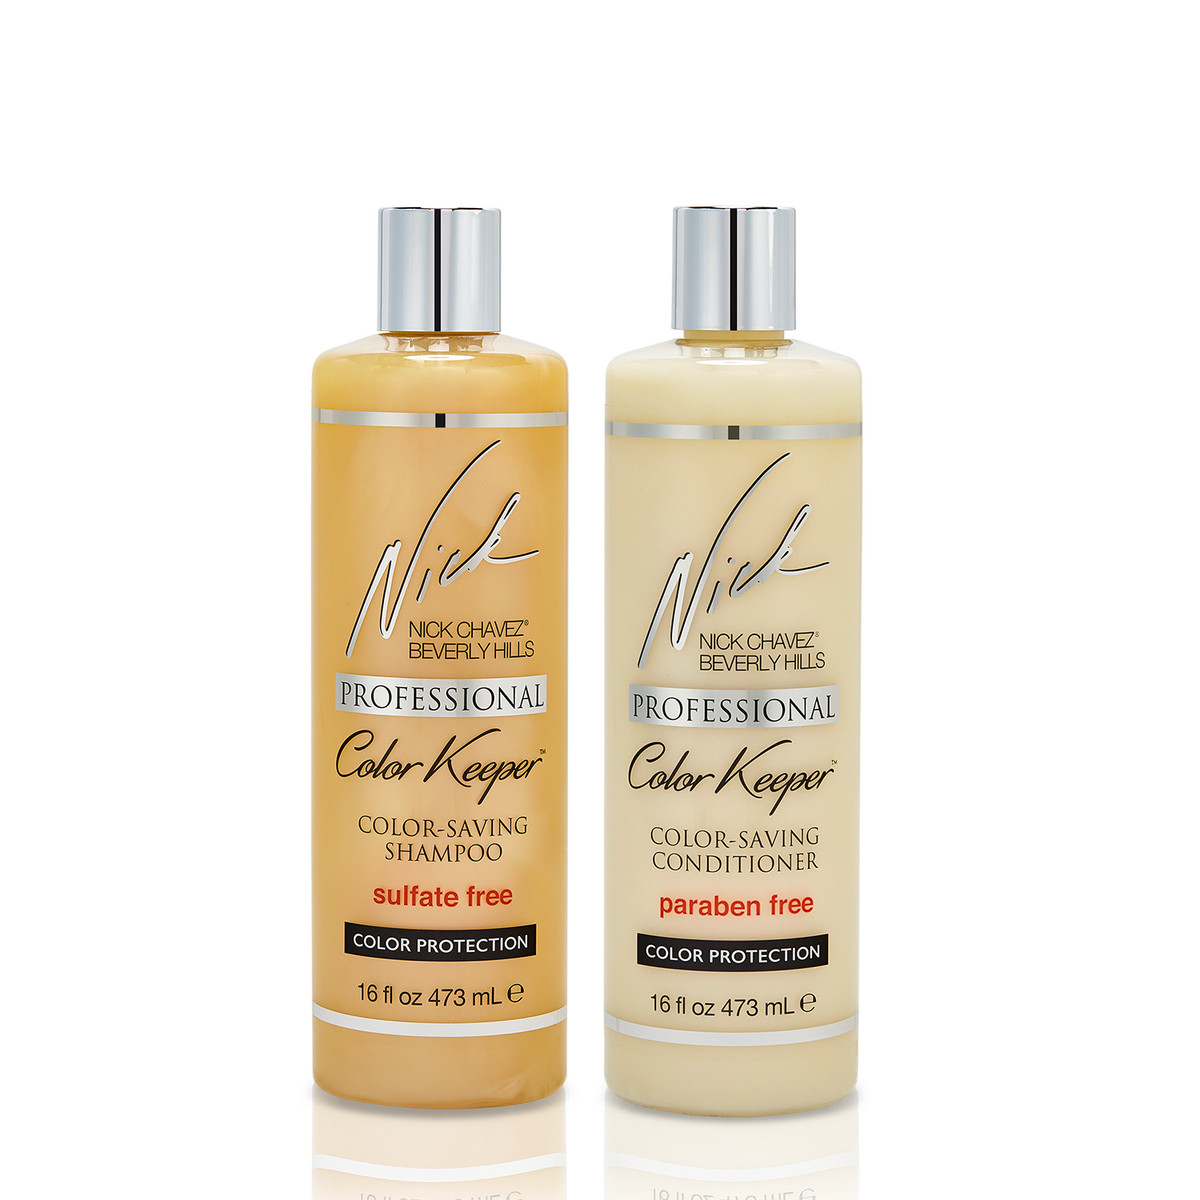 16oz Color Keeper Shampoo and Conditioner Kit